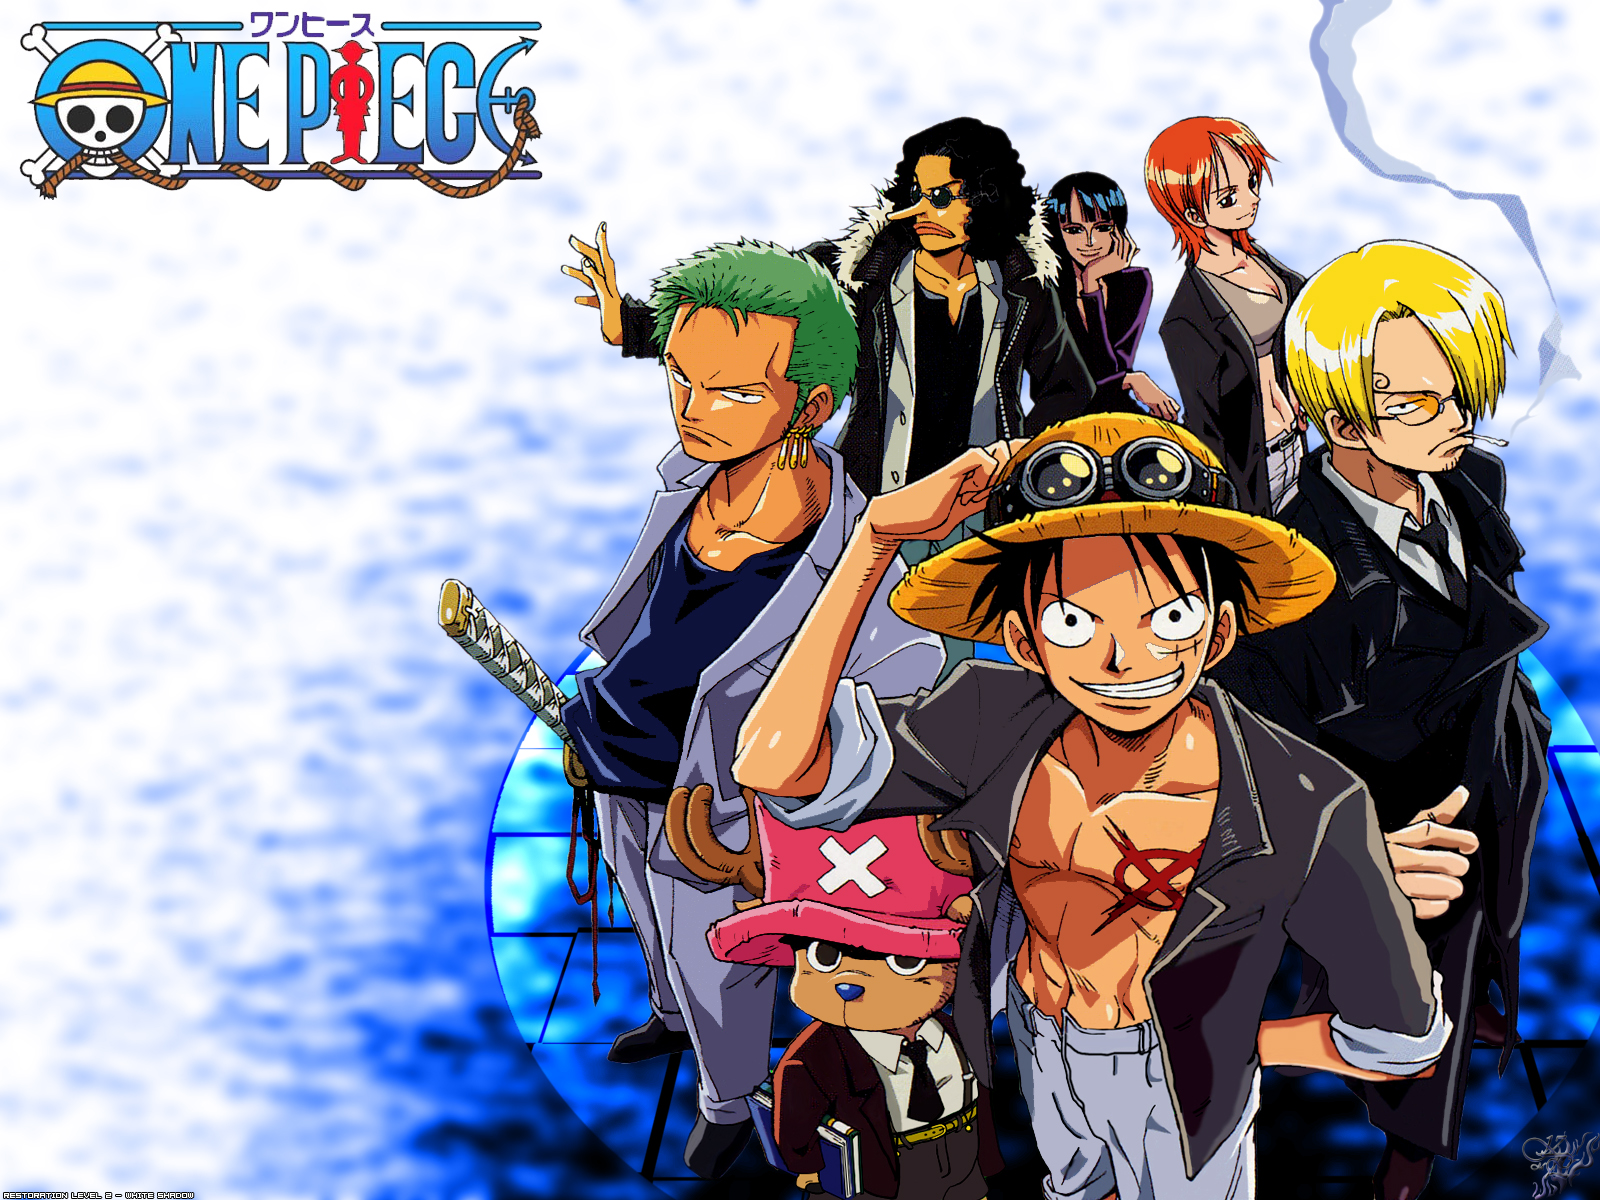 one piece anime desktop wallpaper download one piece anime wallpaper 1600x1200